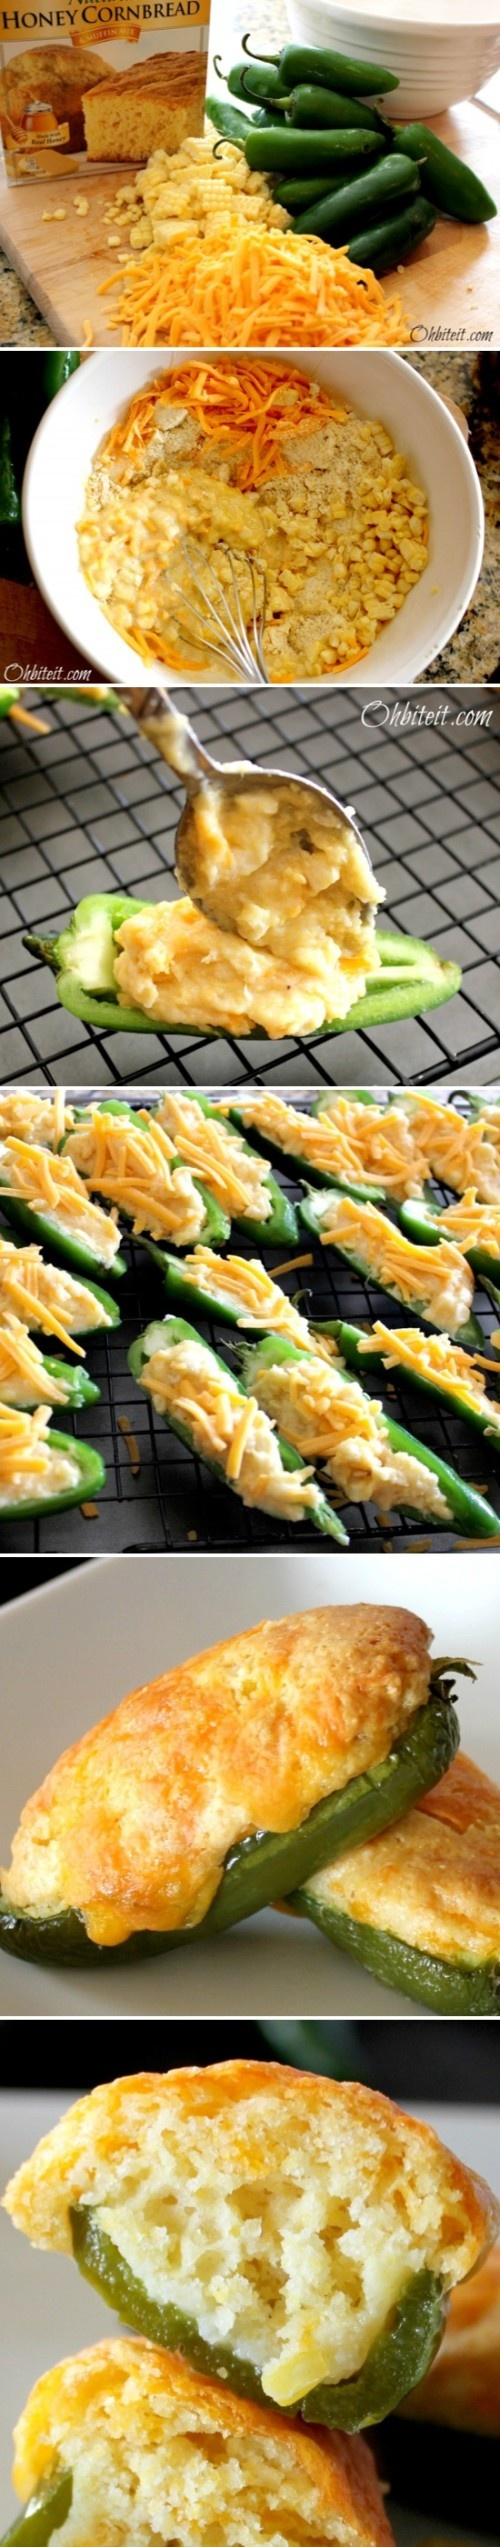 Green and gold snacks for parties or tailgates—Cornbread Jalapeño Poppers